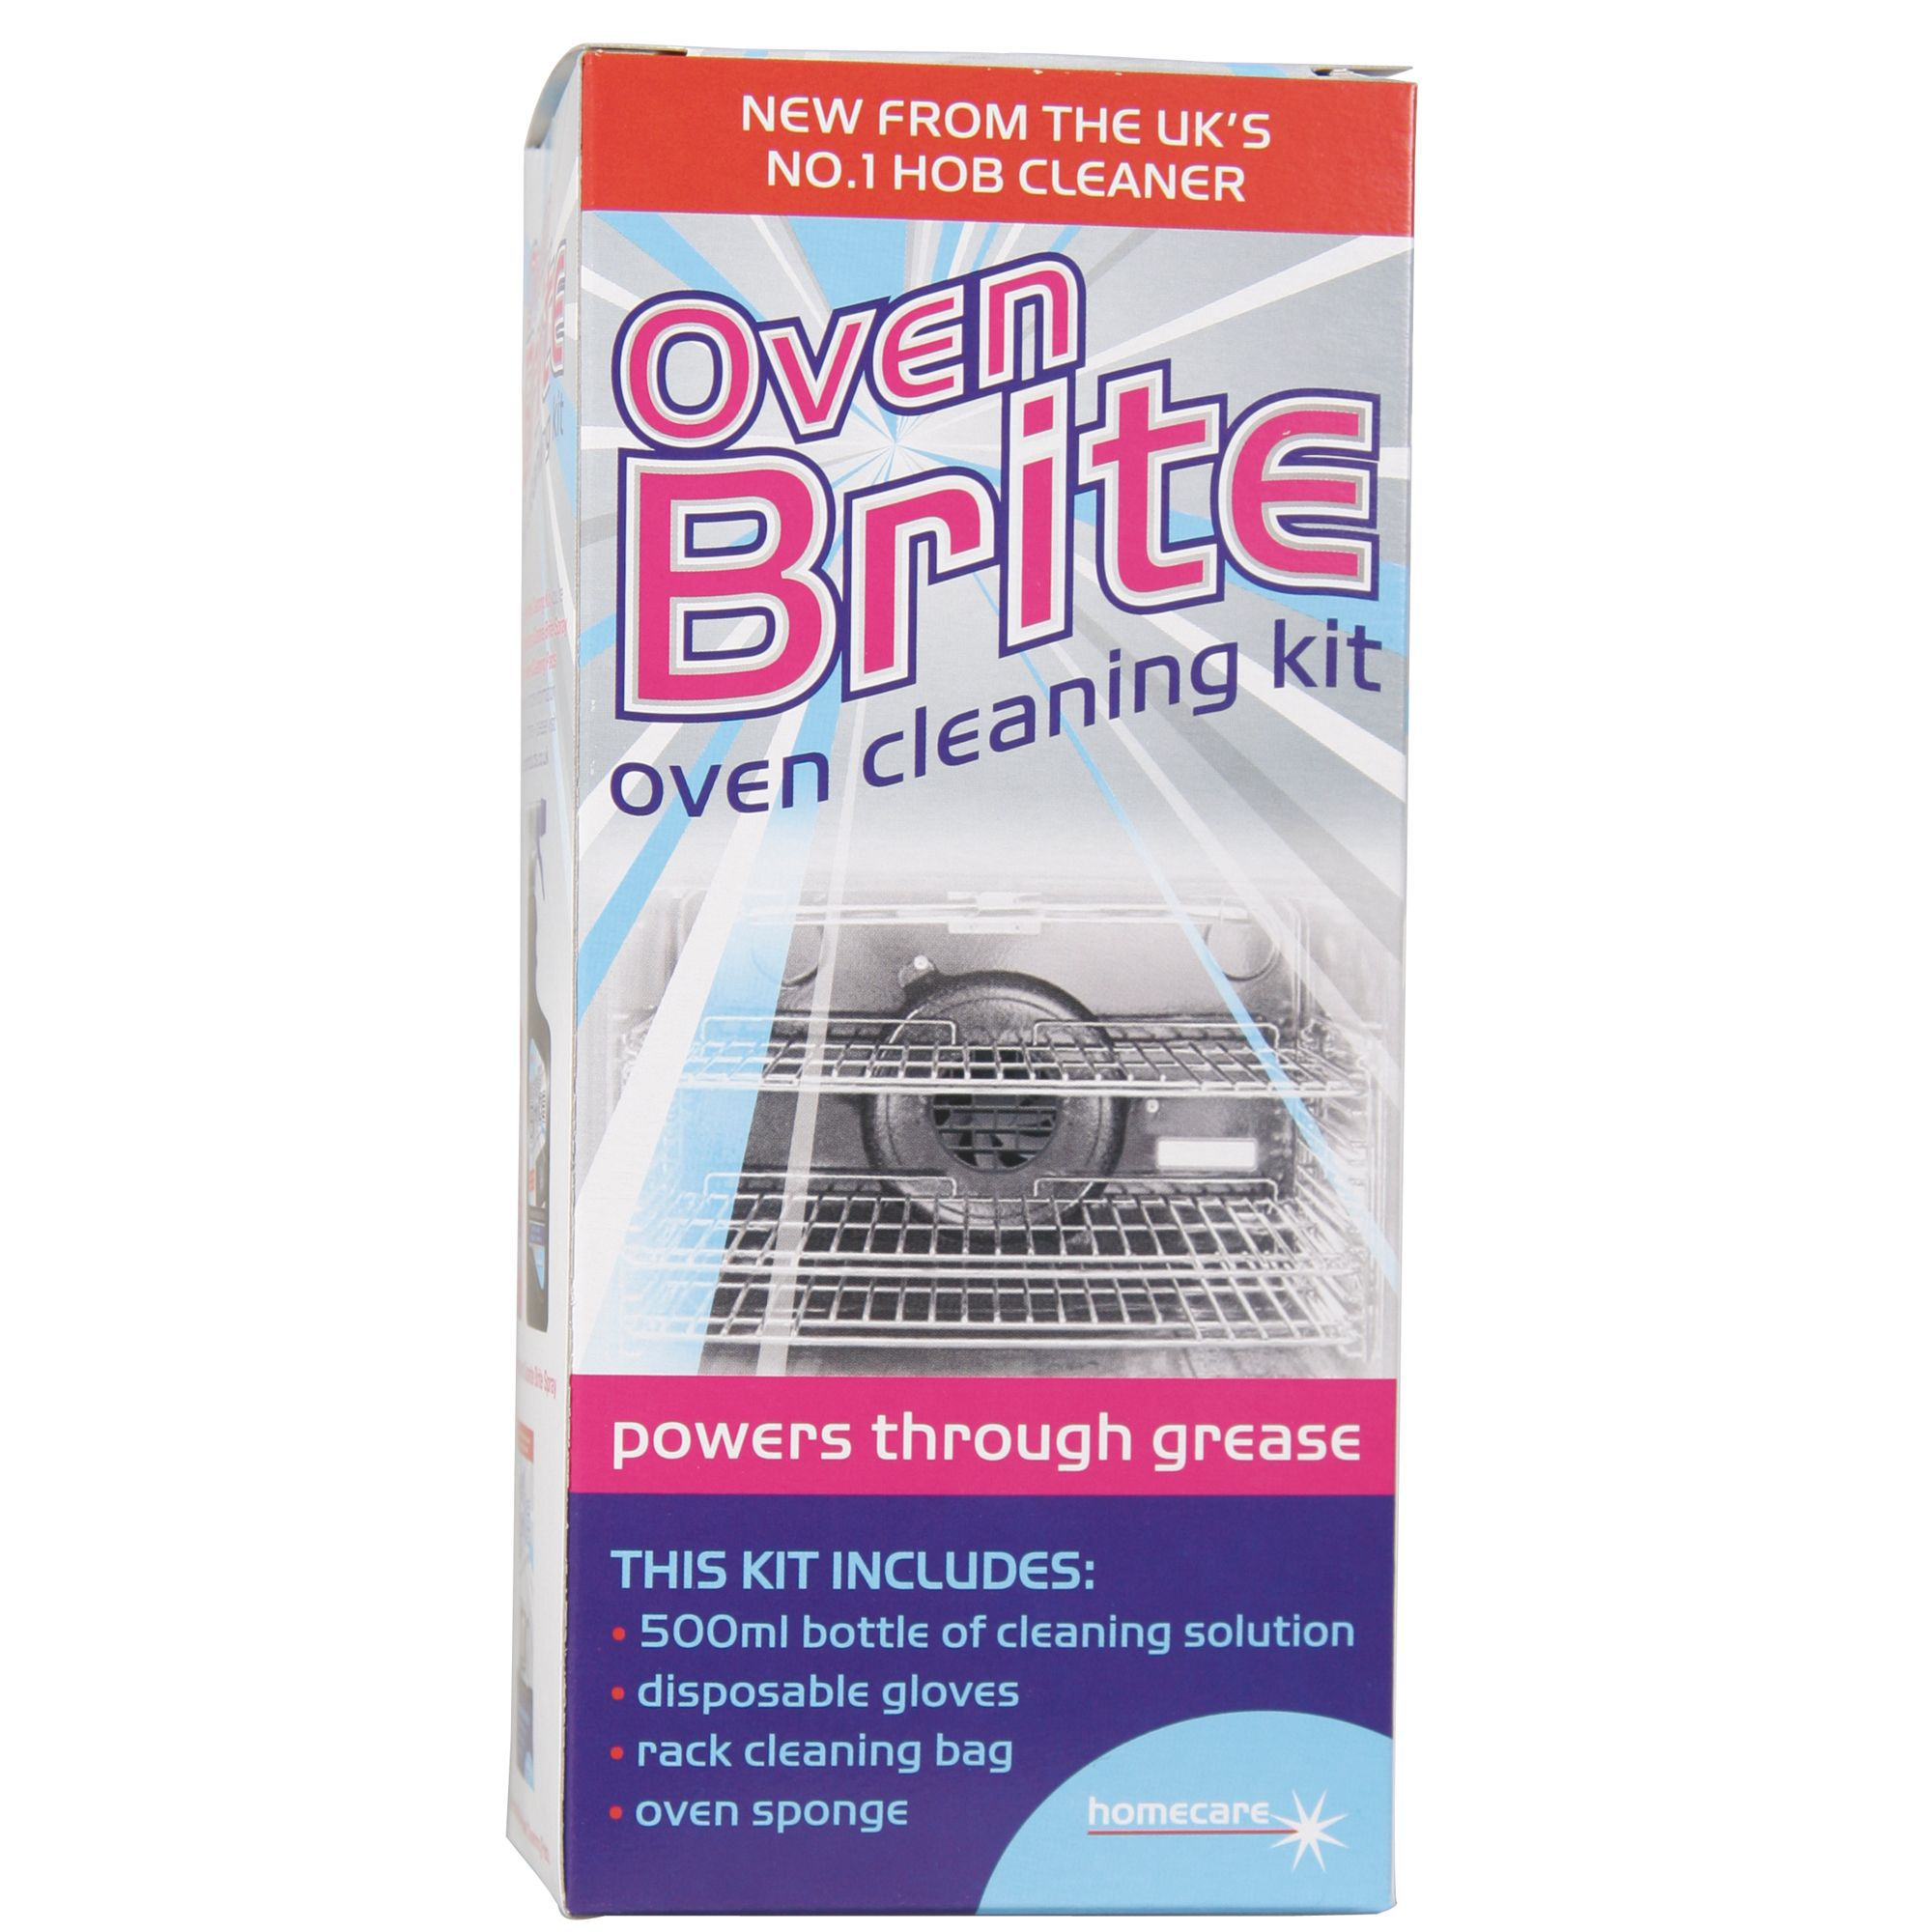 oven brite cleaning kit instructions